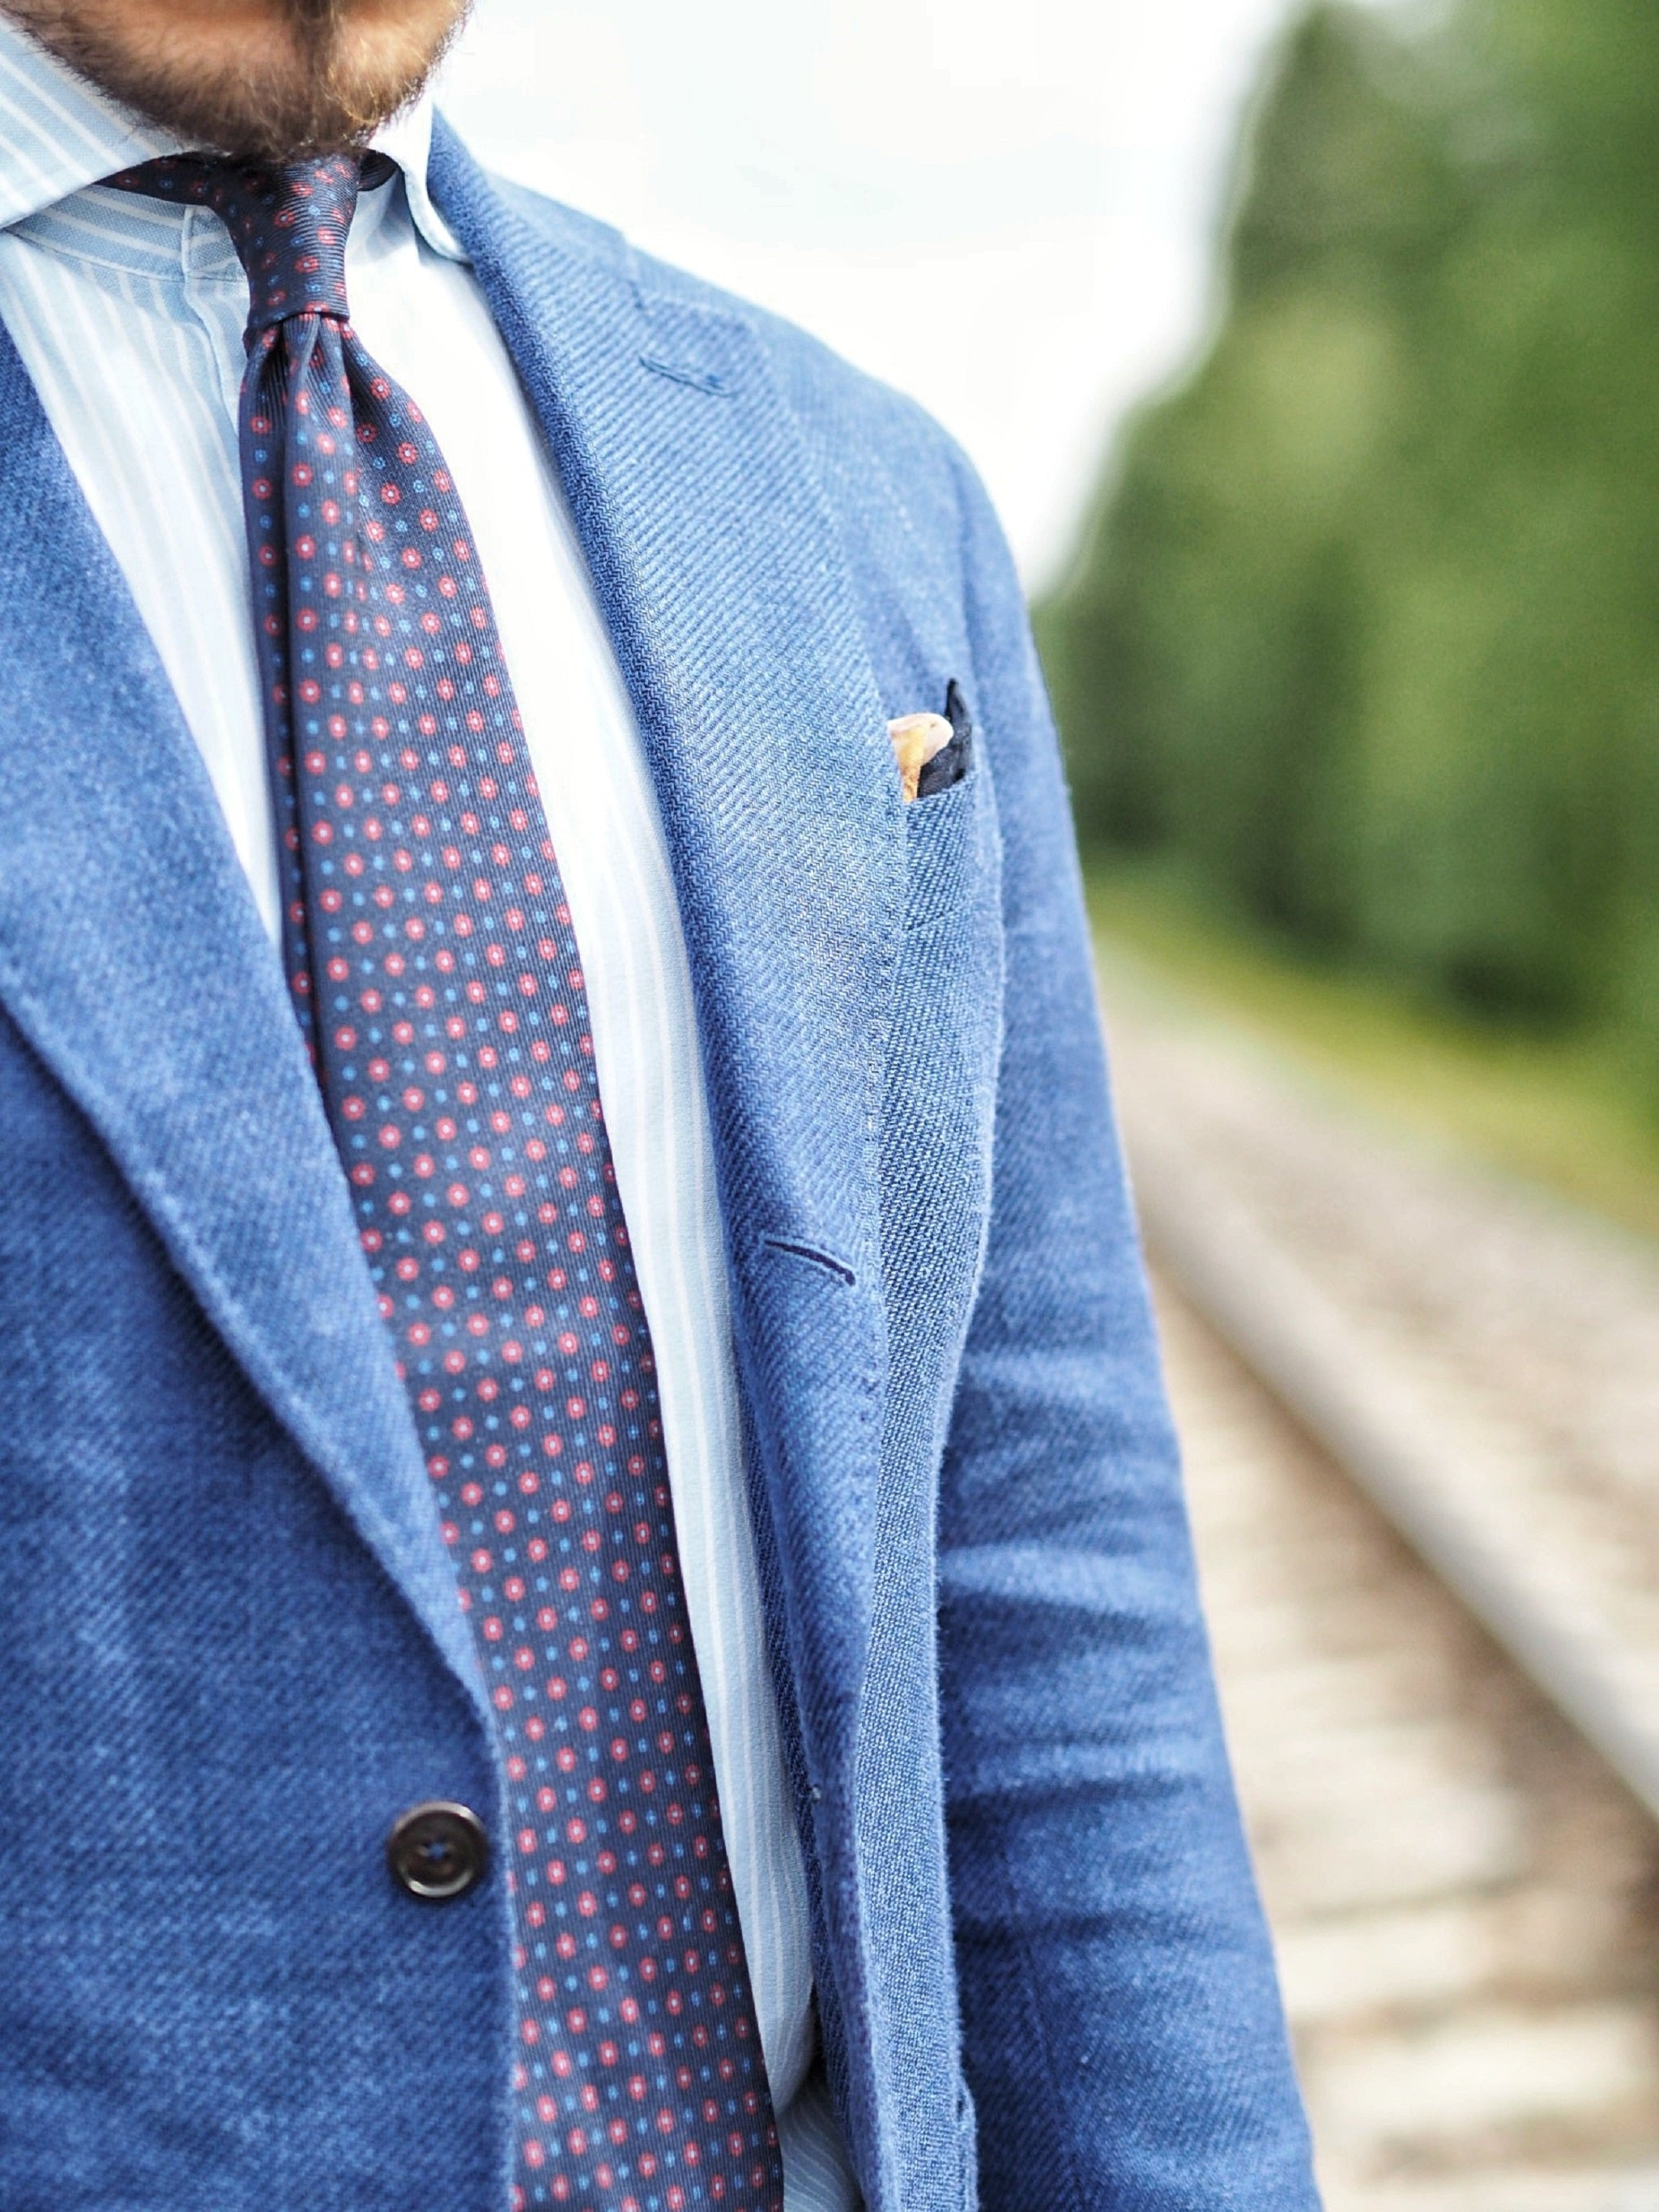 Blue suit jacket as a sport coat - details of the printed silk tie and blue suit jacket